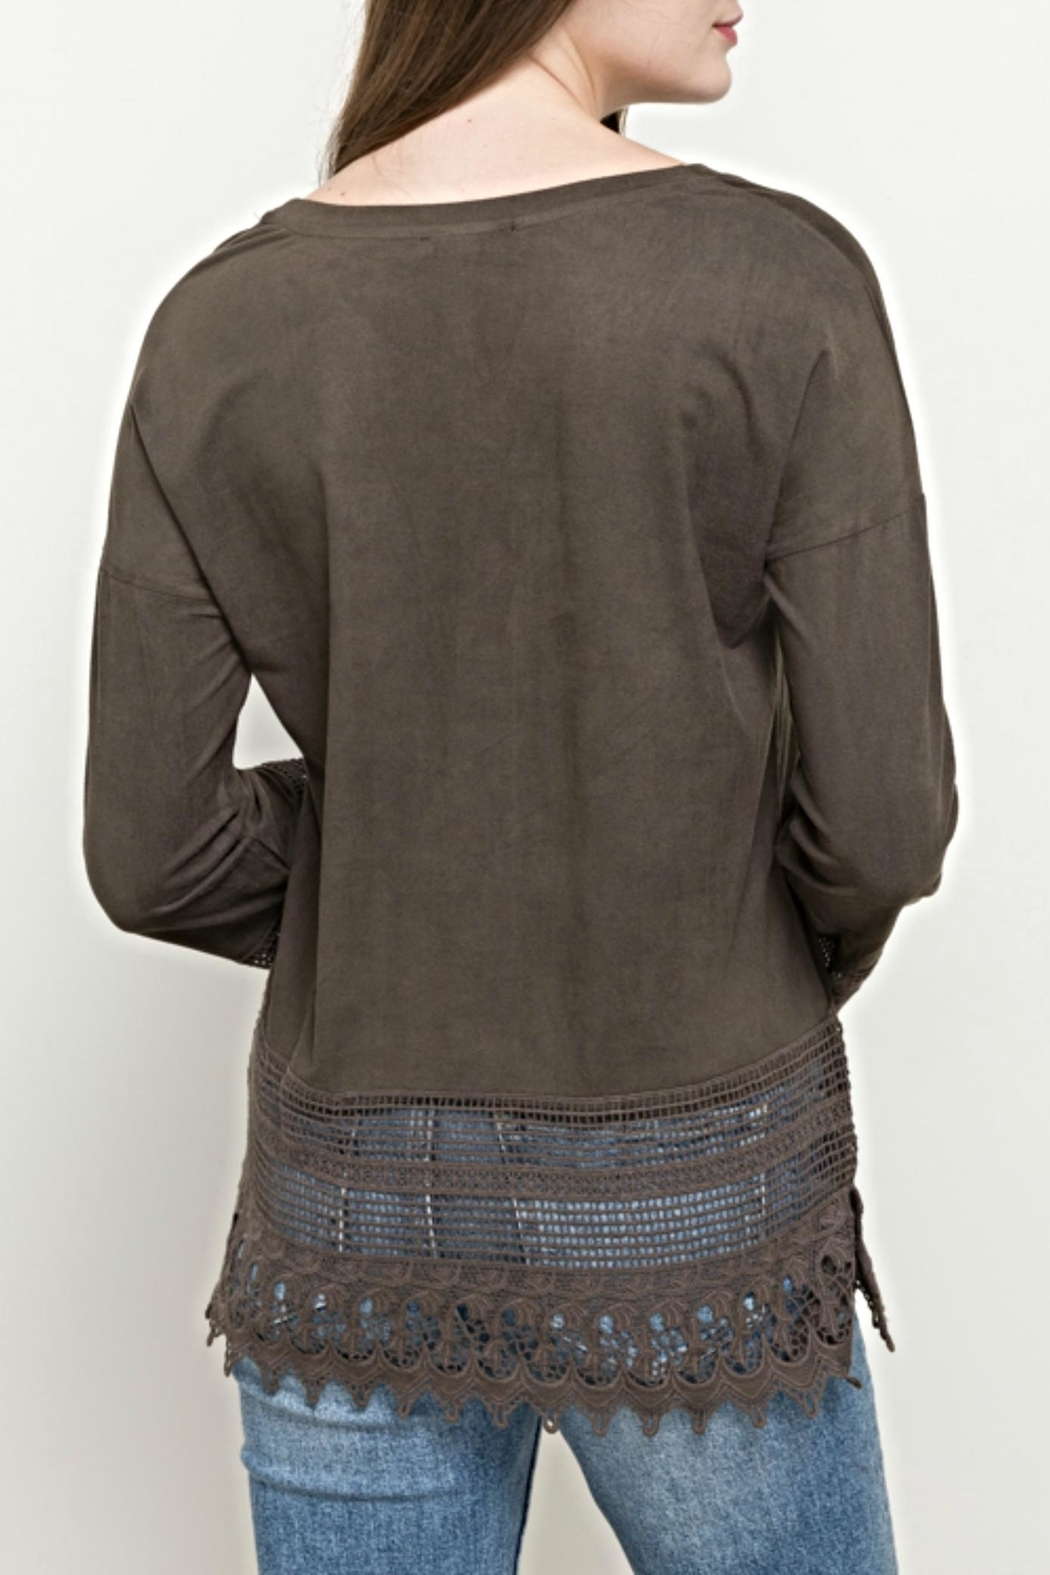 Hem & Thread Suede Lace Top - Front Full Image